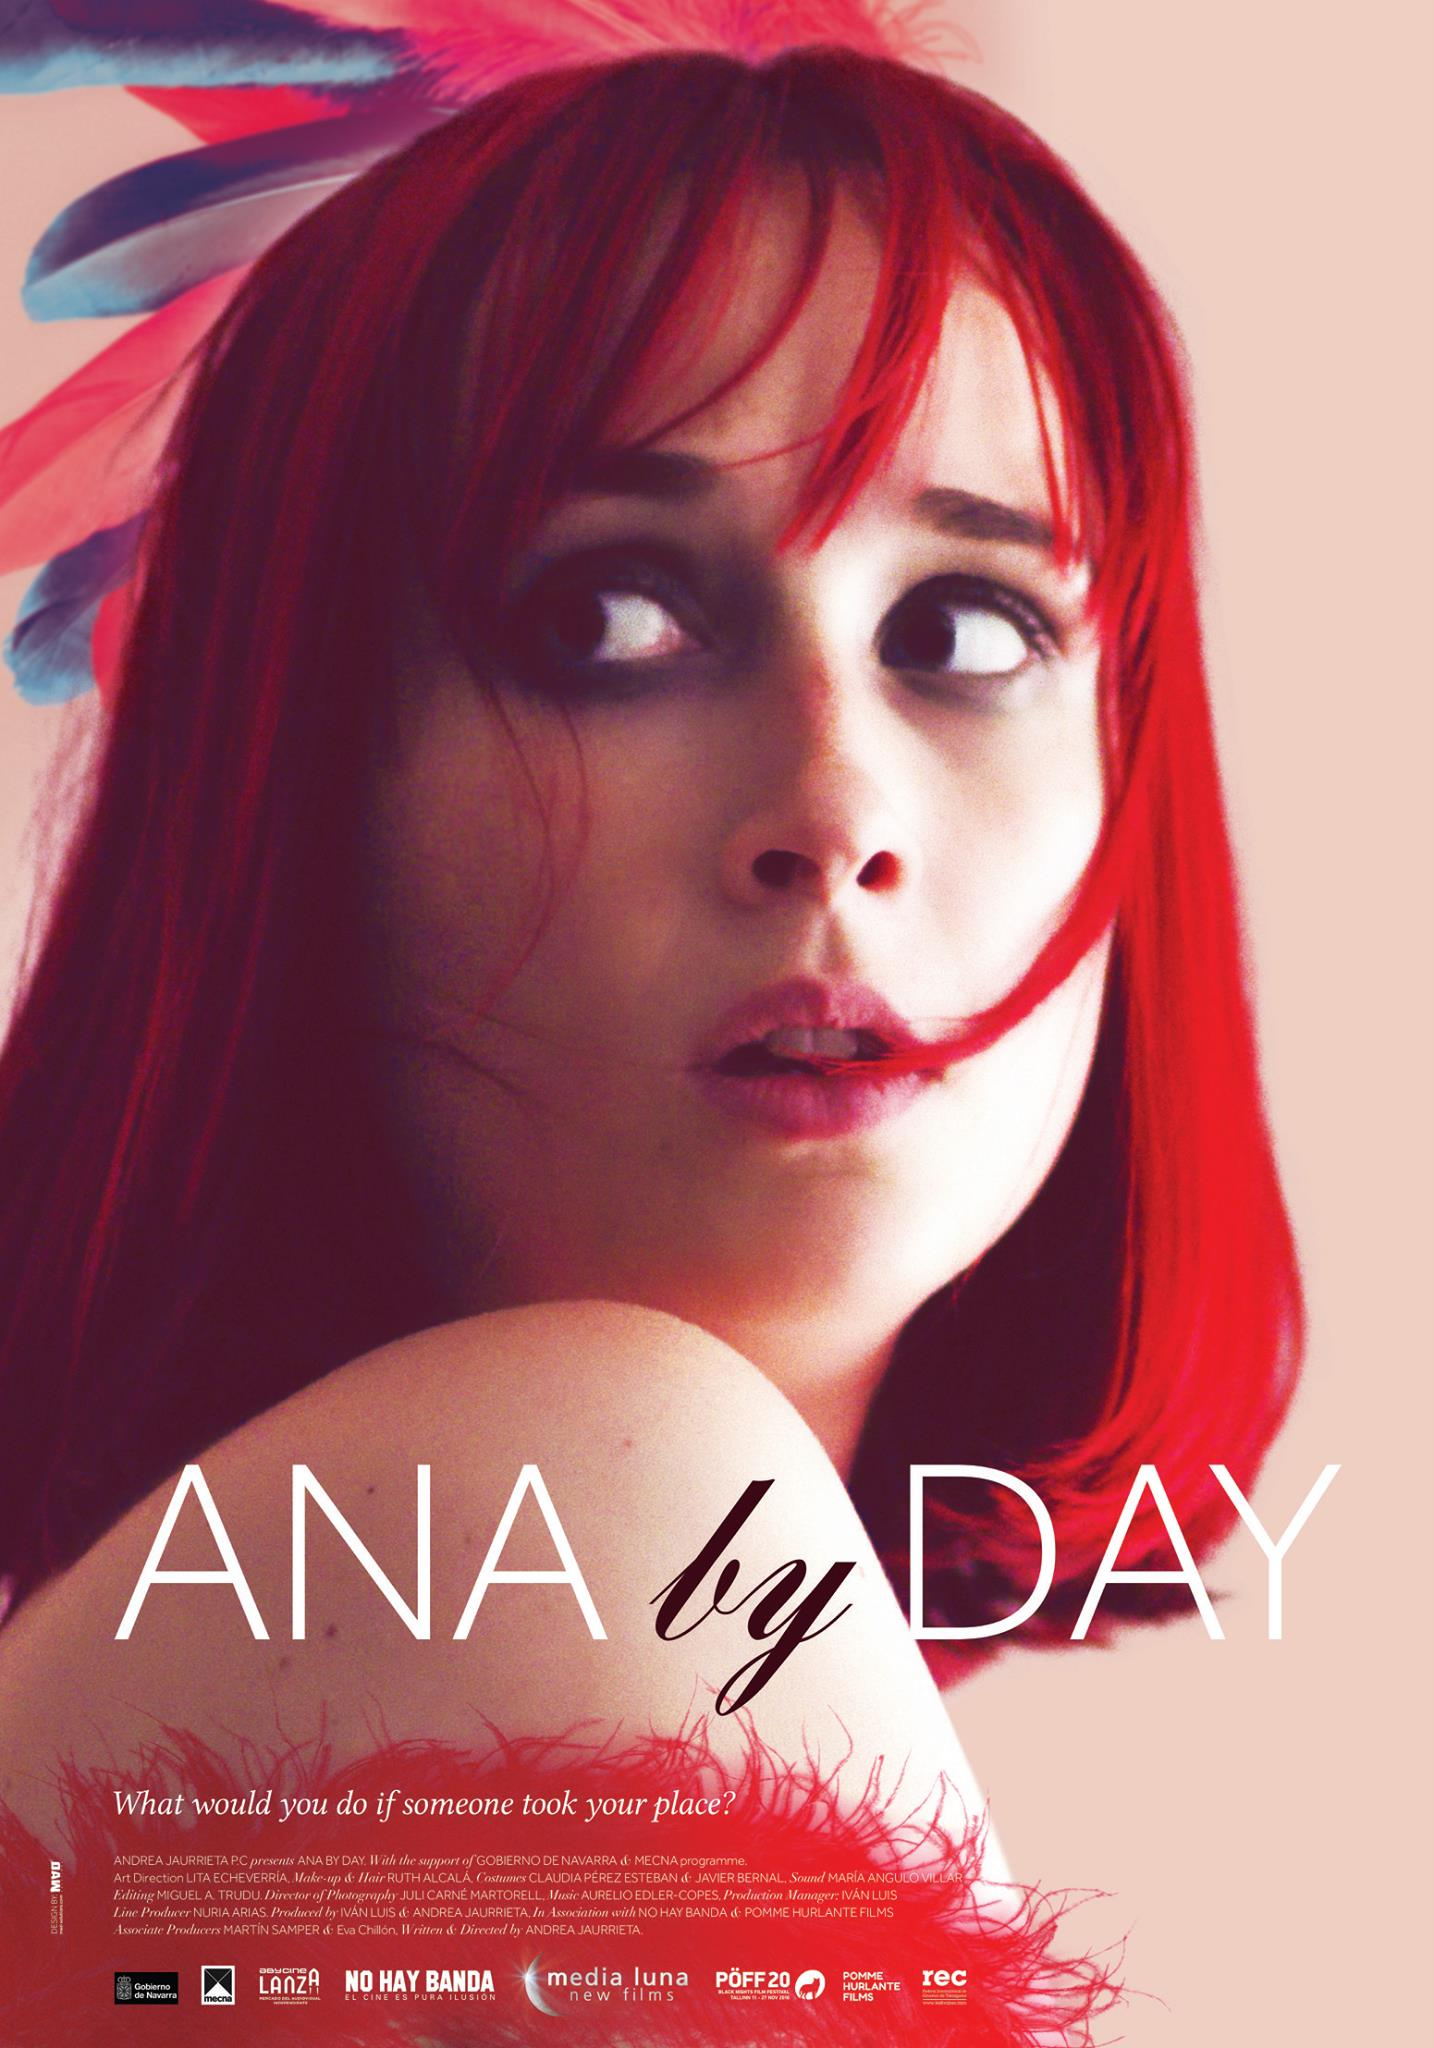 Pomme Hurlante Films - Catalog - Ana by Day - Andrea Jaurrieta